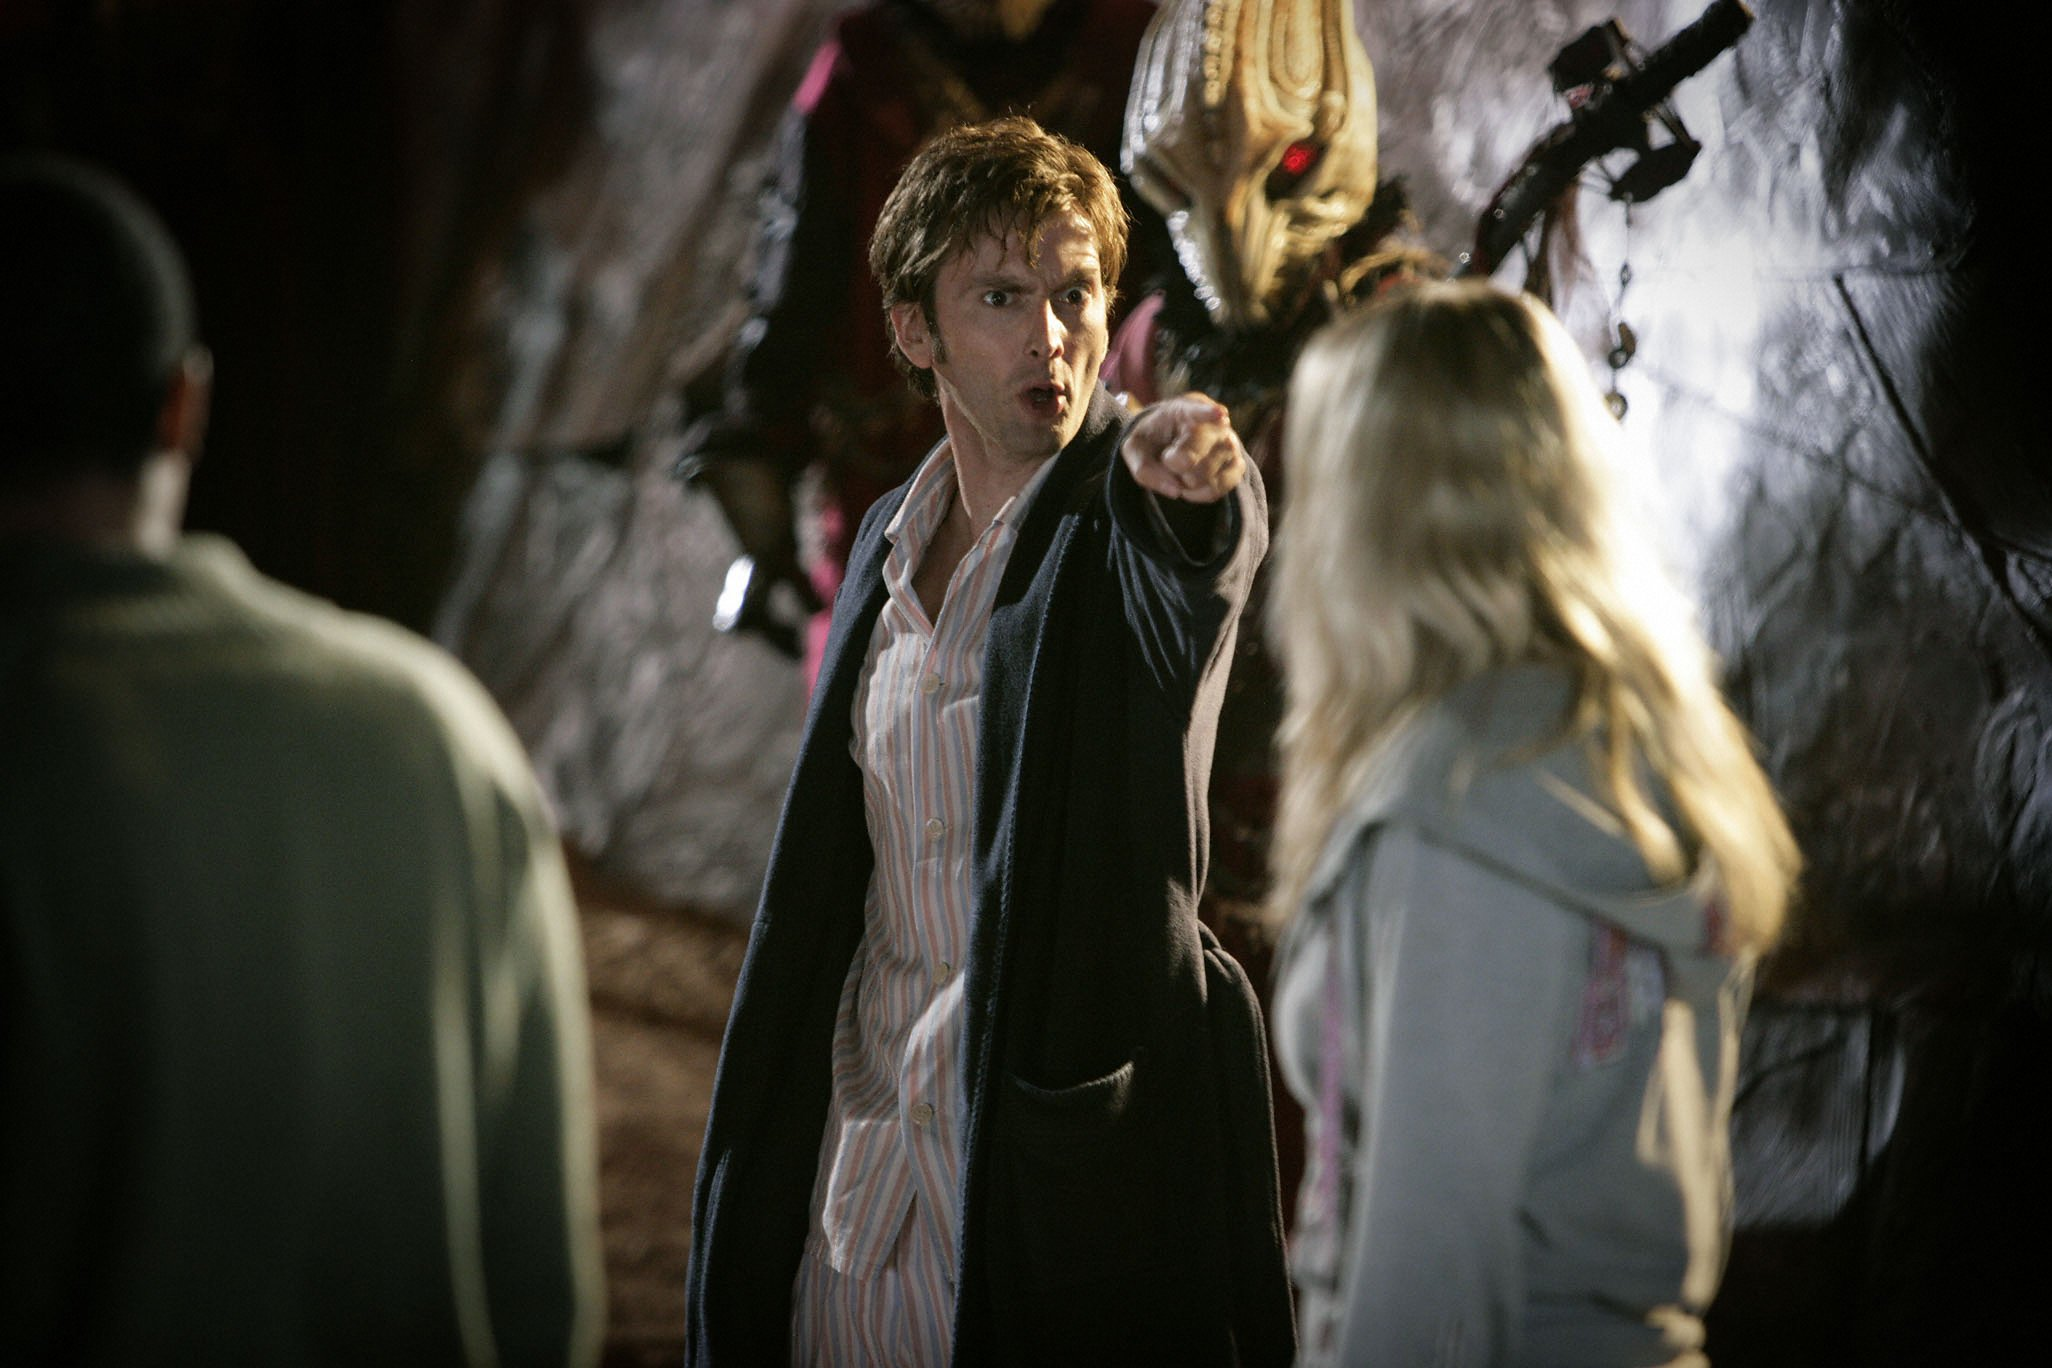 Doctor Who The Christmas Invasion.On This Day In 2005 The Christmas Invasion First Aired